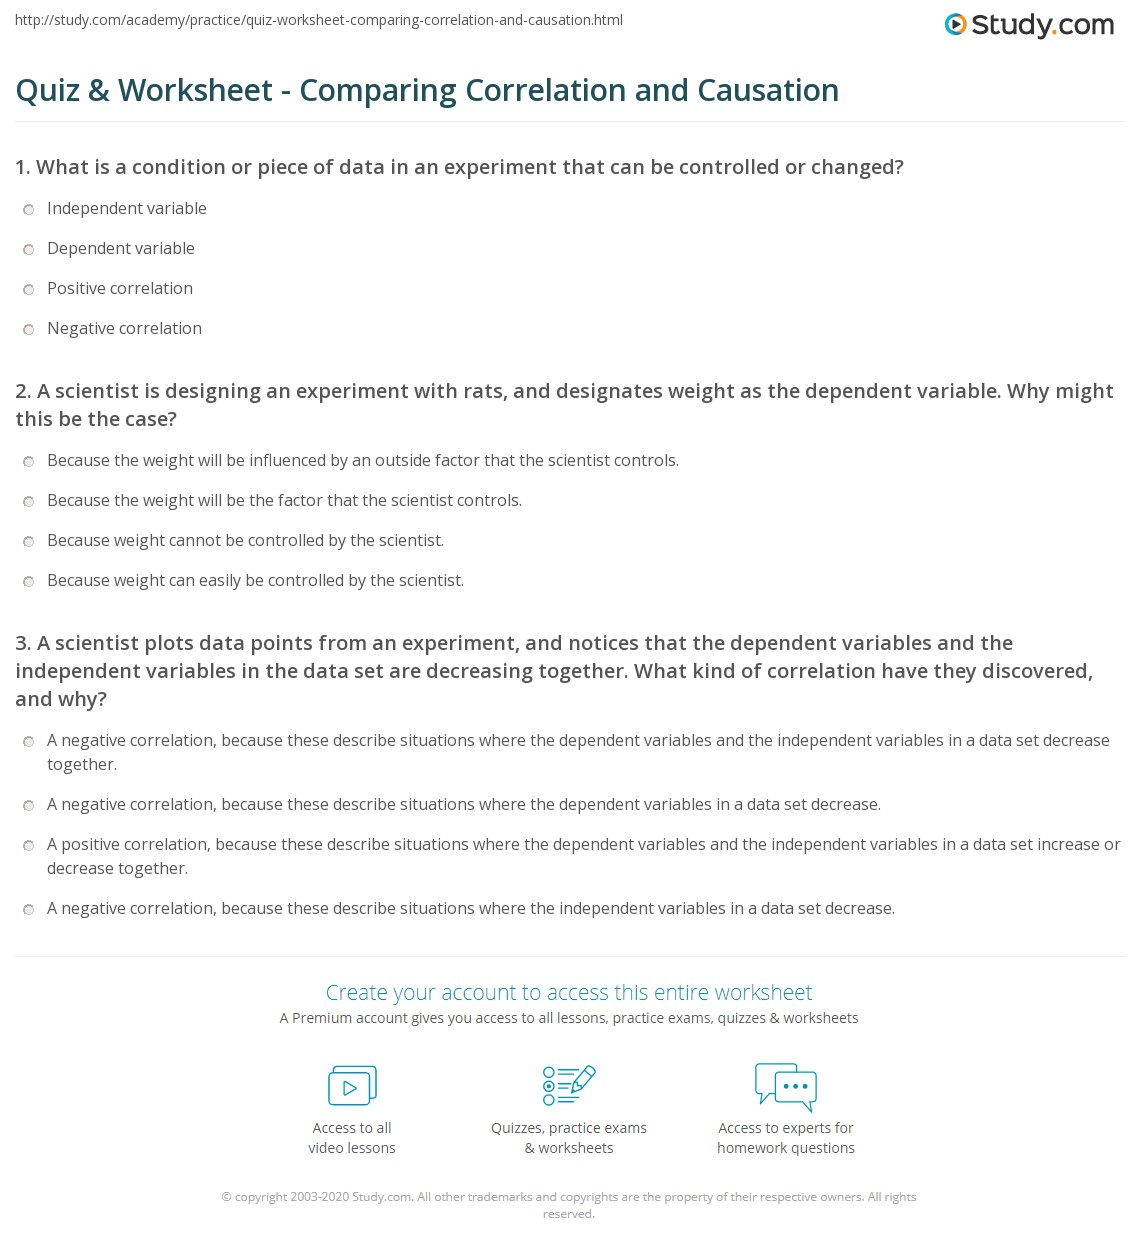 Weirdmailus  Pretty Quiz Amp Worksheet  Comparing Correlation And Causation  Studycom With Luxury Print Correlation Vs Causation Differences Amp Definition Worksheet With Attractive Transversal Angles Worksheet Also Endocrine Worksheet In Addition Second Grade Place Value Worksheets And Groundhog Day Worksheets Free As Well As Kindergarten Math Worksheets Addition Additionally Sensory Words Worksheet From Studycom With Weirdmailus  Luxury Quiz Amp Worksheet  Comparing Correlation And Causation  Studycom With Attractive Print Correlation Vs Causation Differences Amp Definition Worksheet And Pretty Transversal Angles Worksheet Also Endocrine Worksheet In Addition Second Grade Place Value Worksheets From Studycom